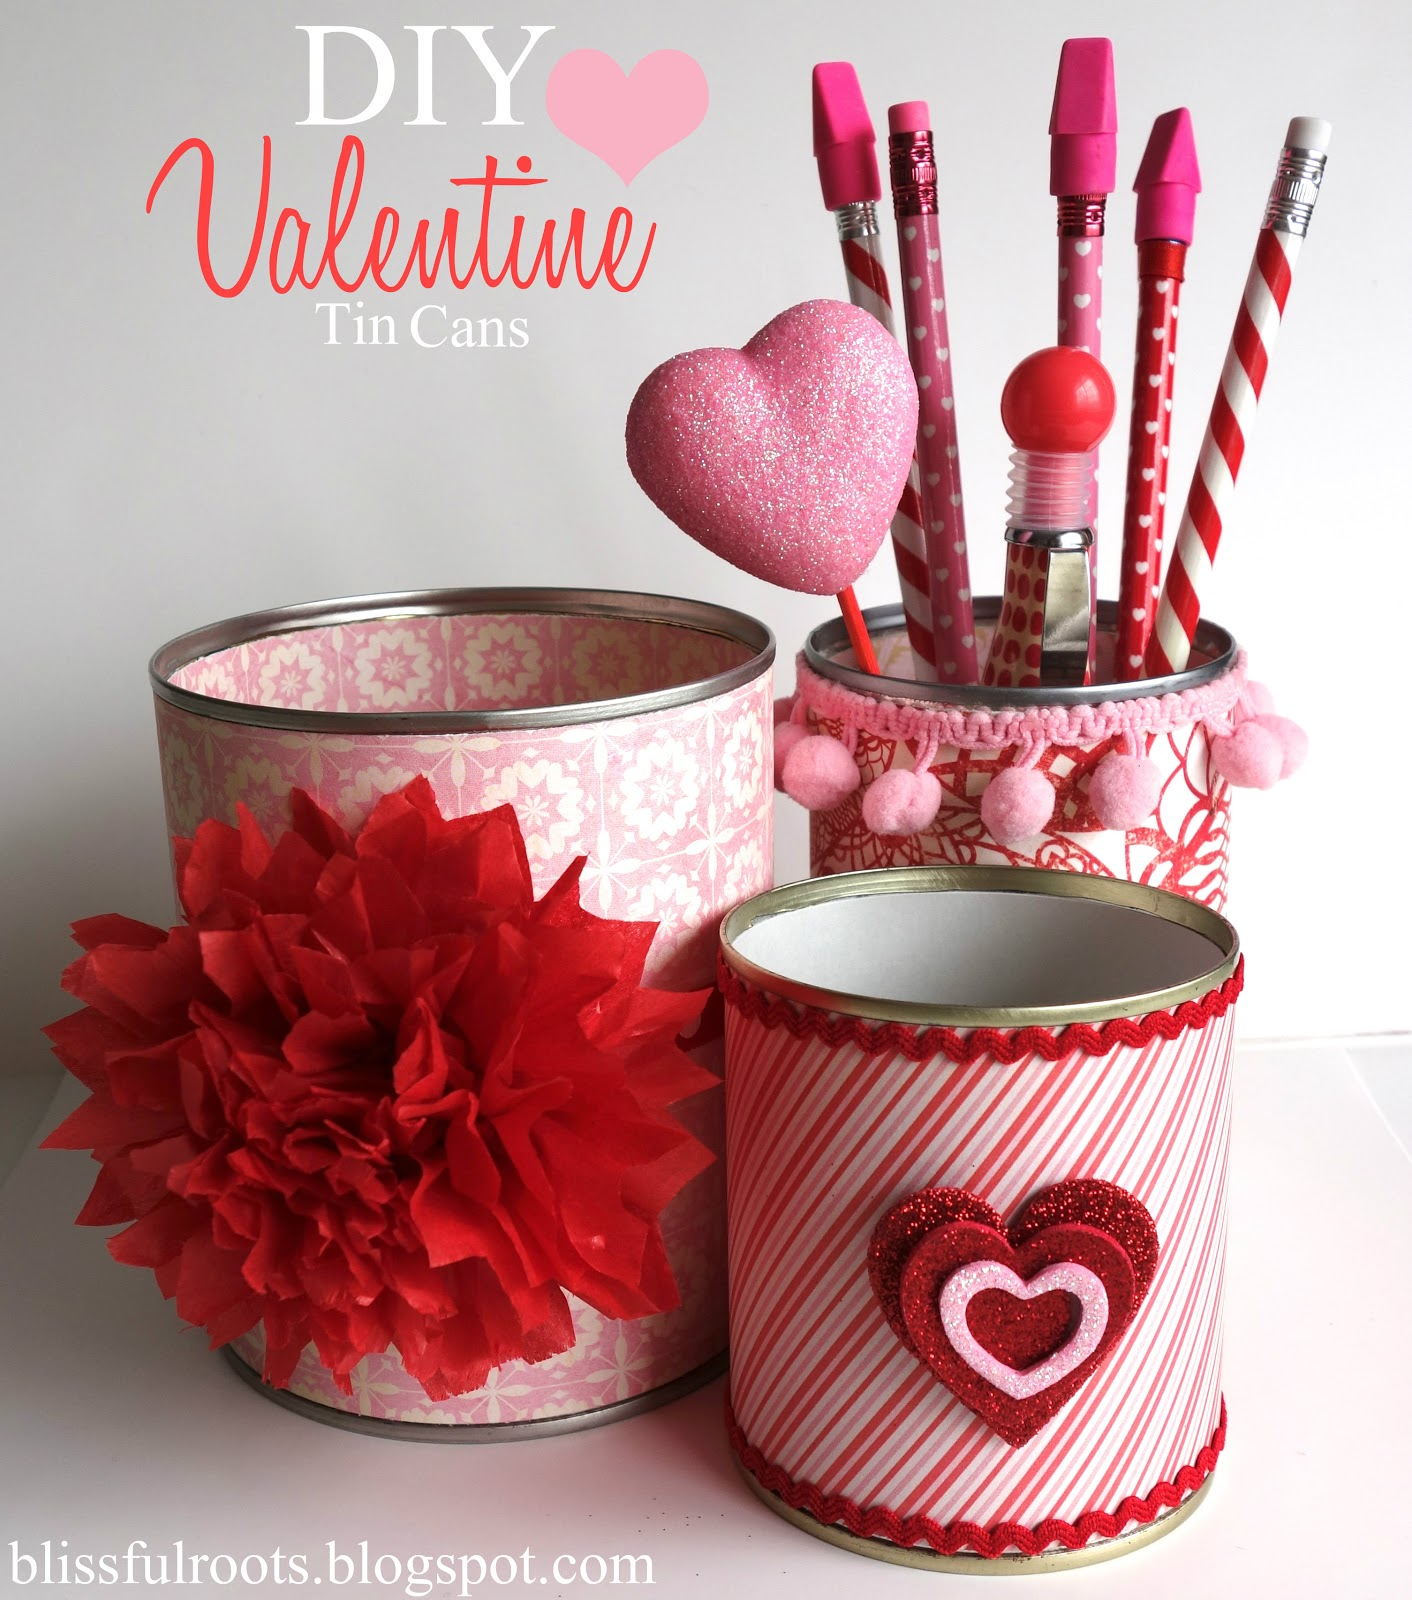 Blissful roots diy valentine tin cans for Tin cans for crafts